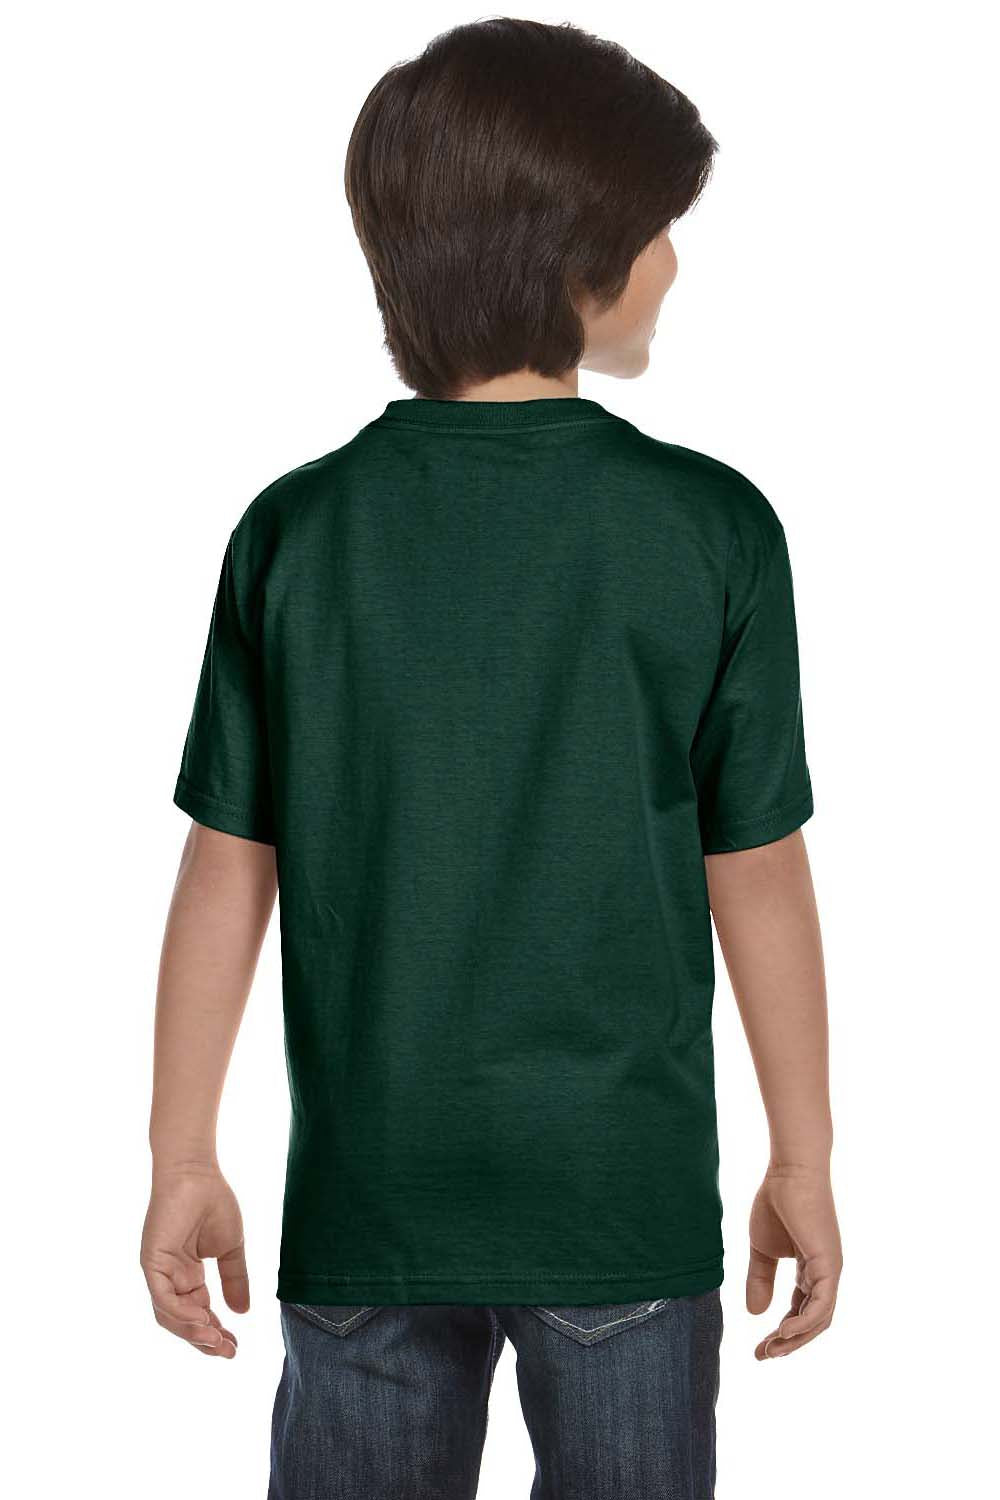 Hanes 5480 Youth ComfortSoft Short Sleeve Crewneck T-Shirt Forest Green Back